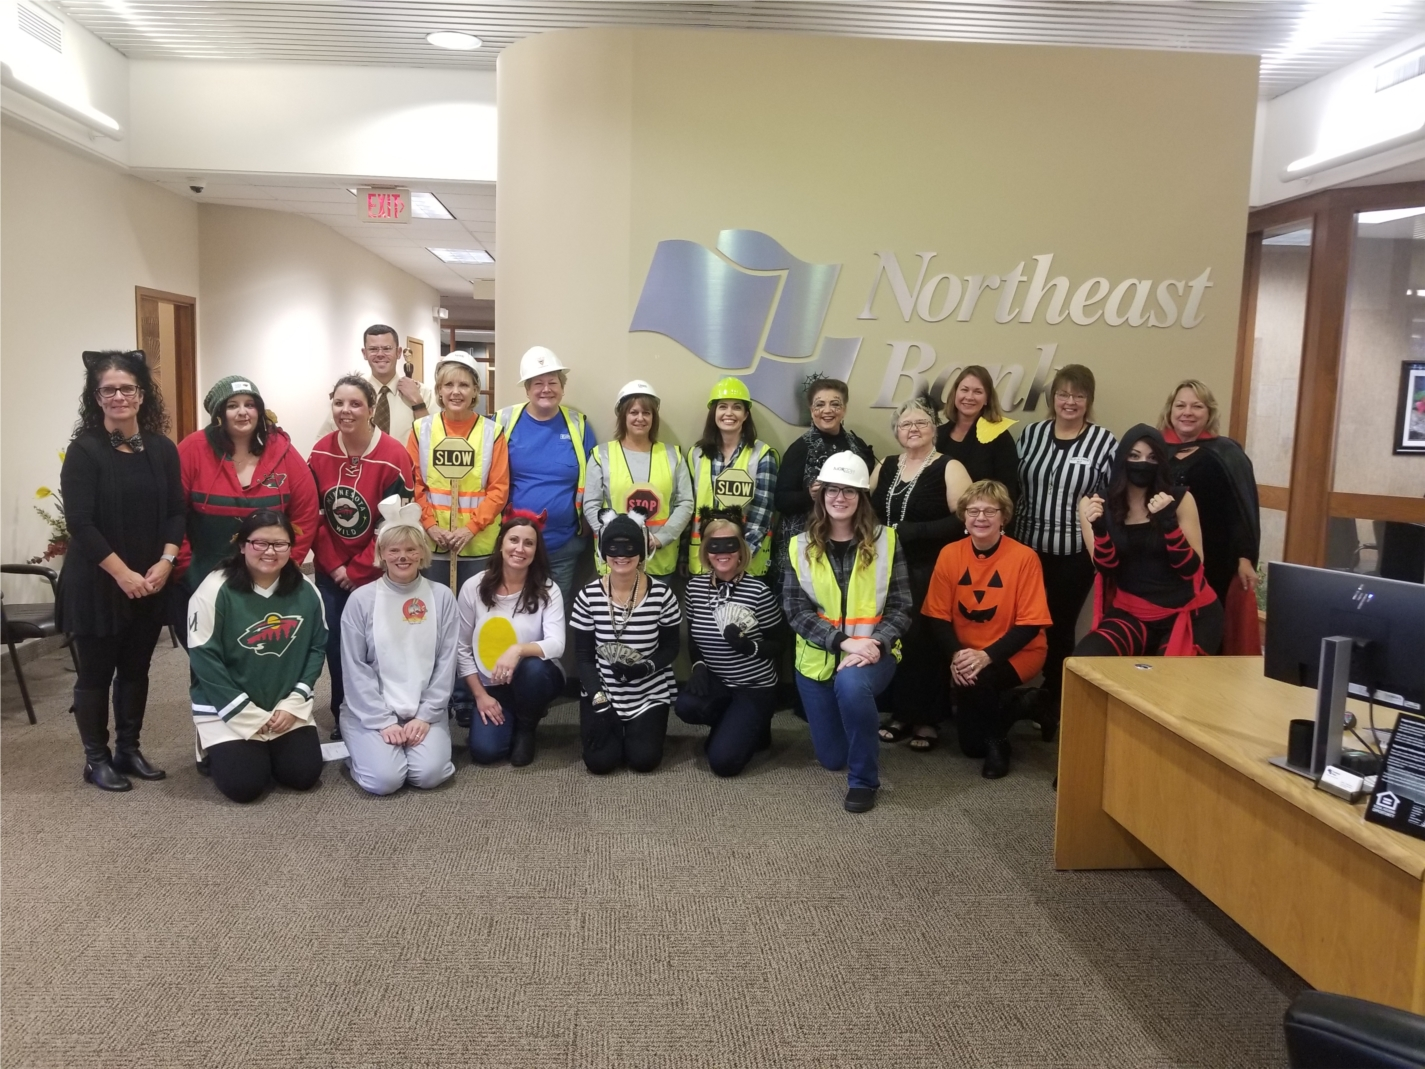 We love to have fun at work - here is our Minneapolis staff fully dressed up for Halloween!